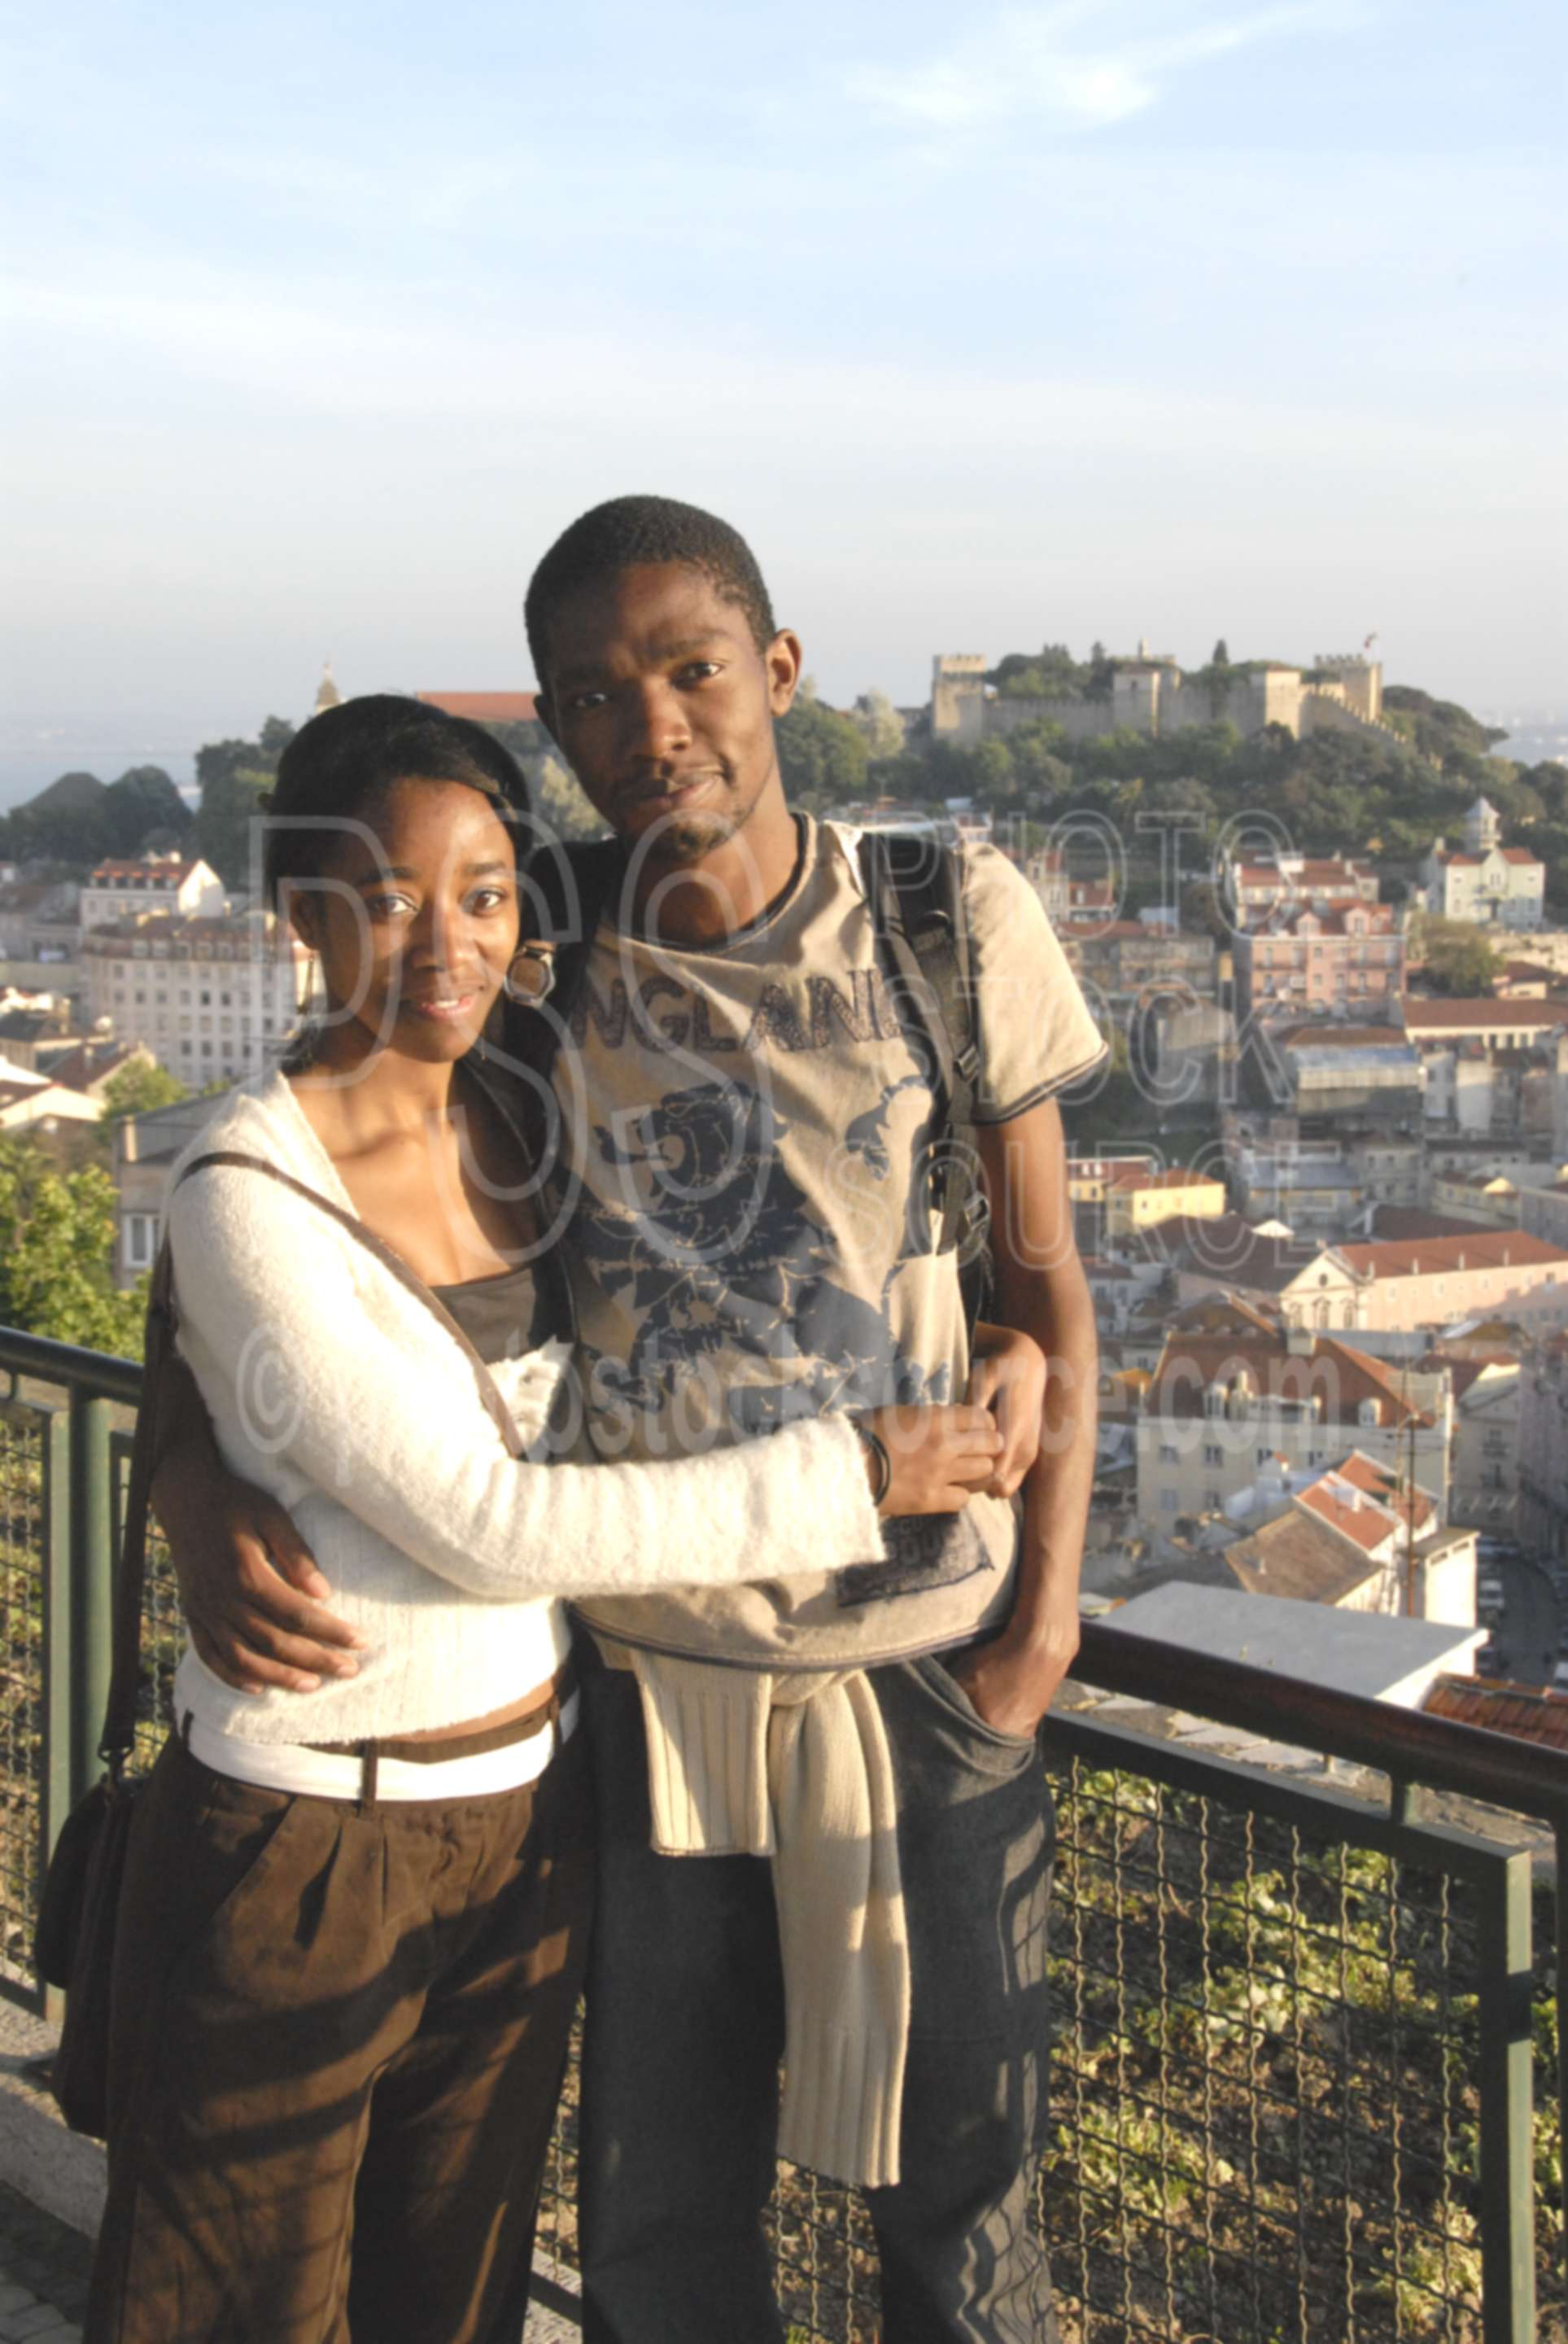 Couple in Love,viewpoint,love,affection,hugs,african,black